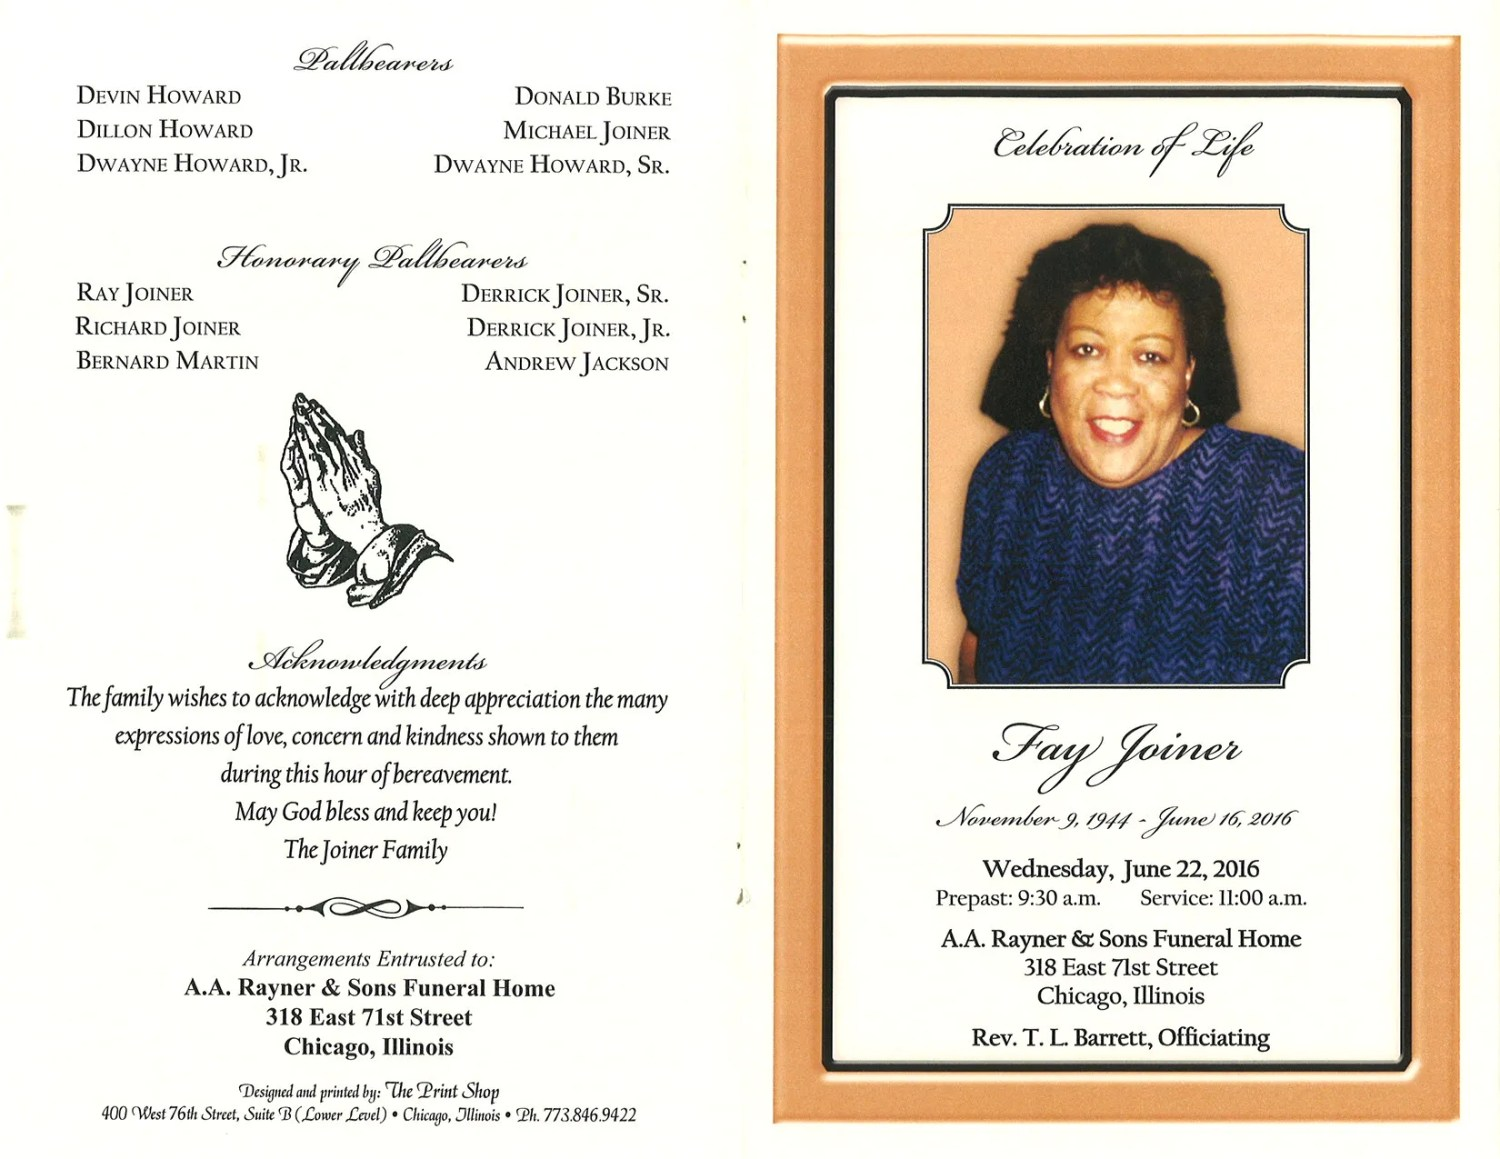 fay joiner obituary aa rayner and sons funeral home Free Church Bulletin Covers free clipart for church programs luke 4 14-21